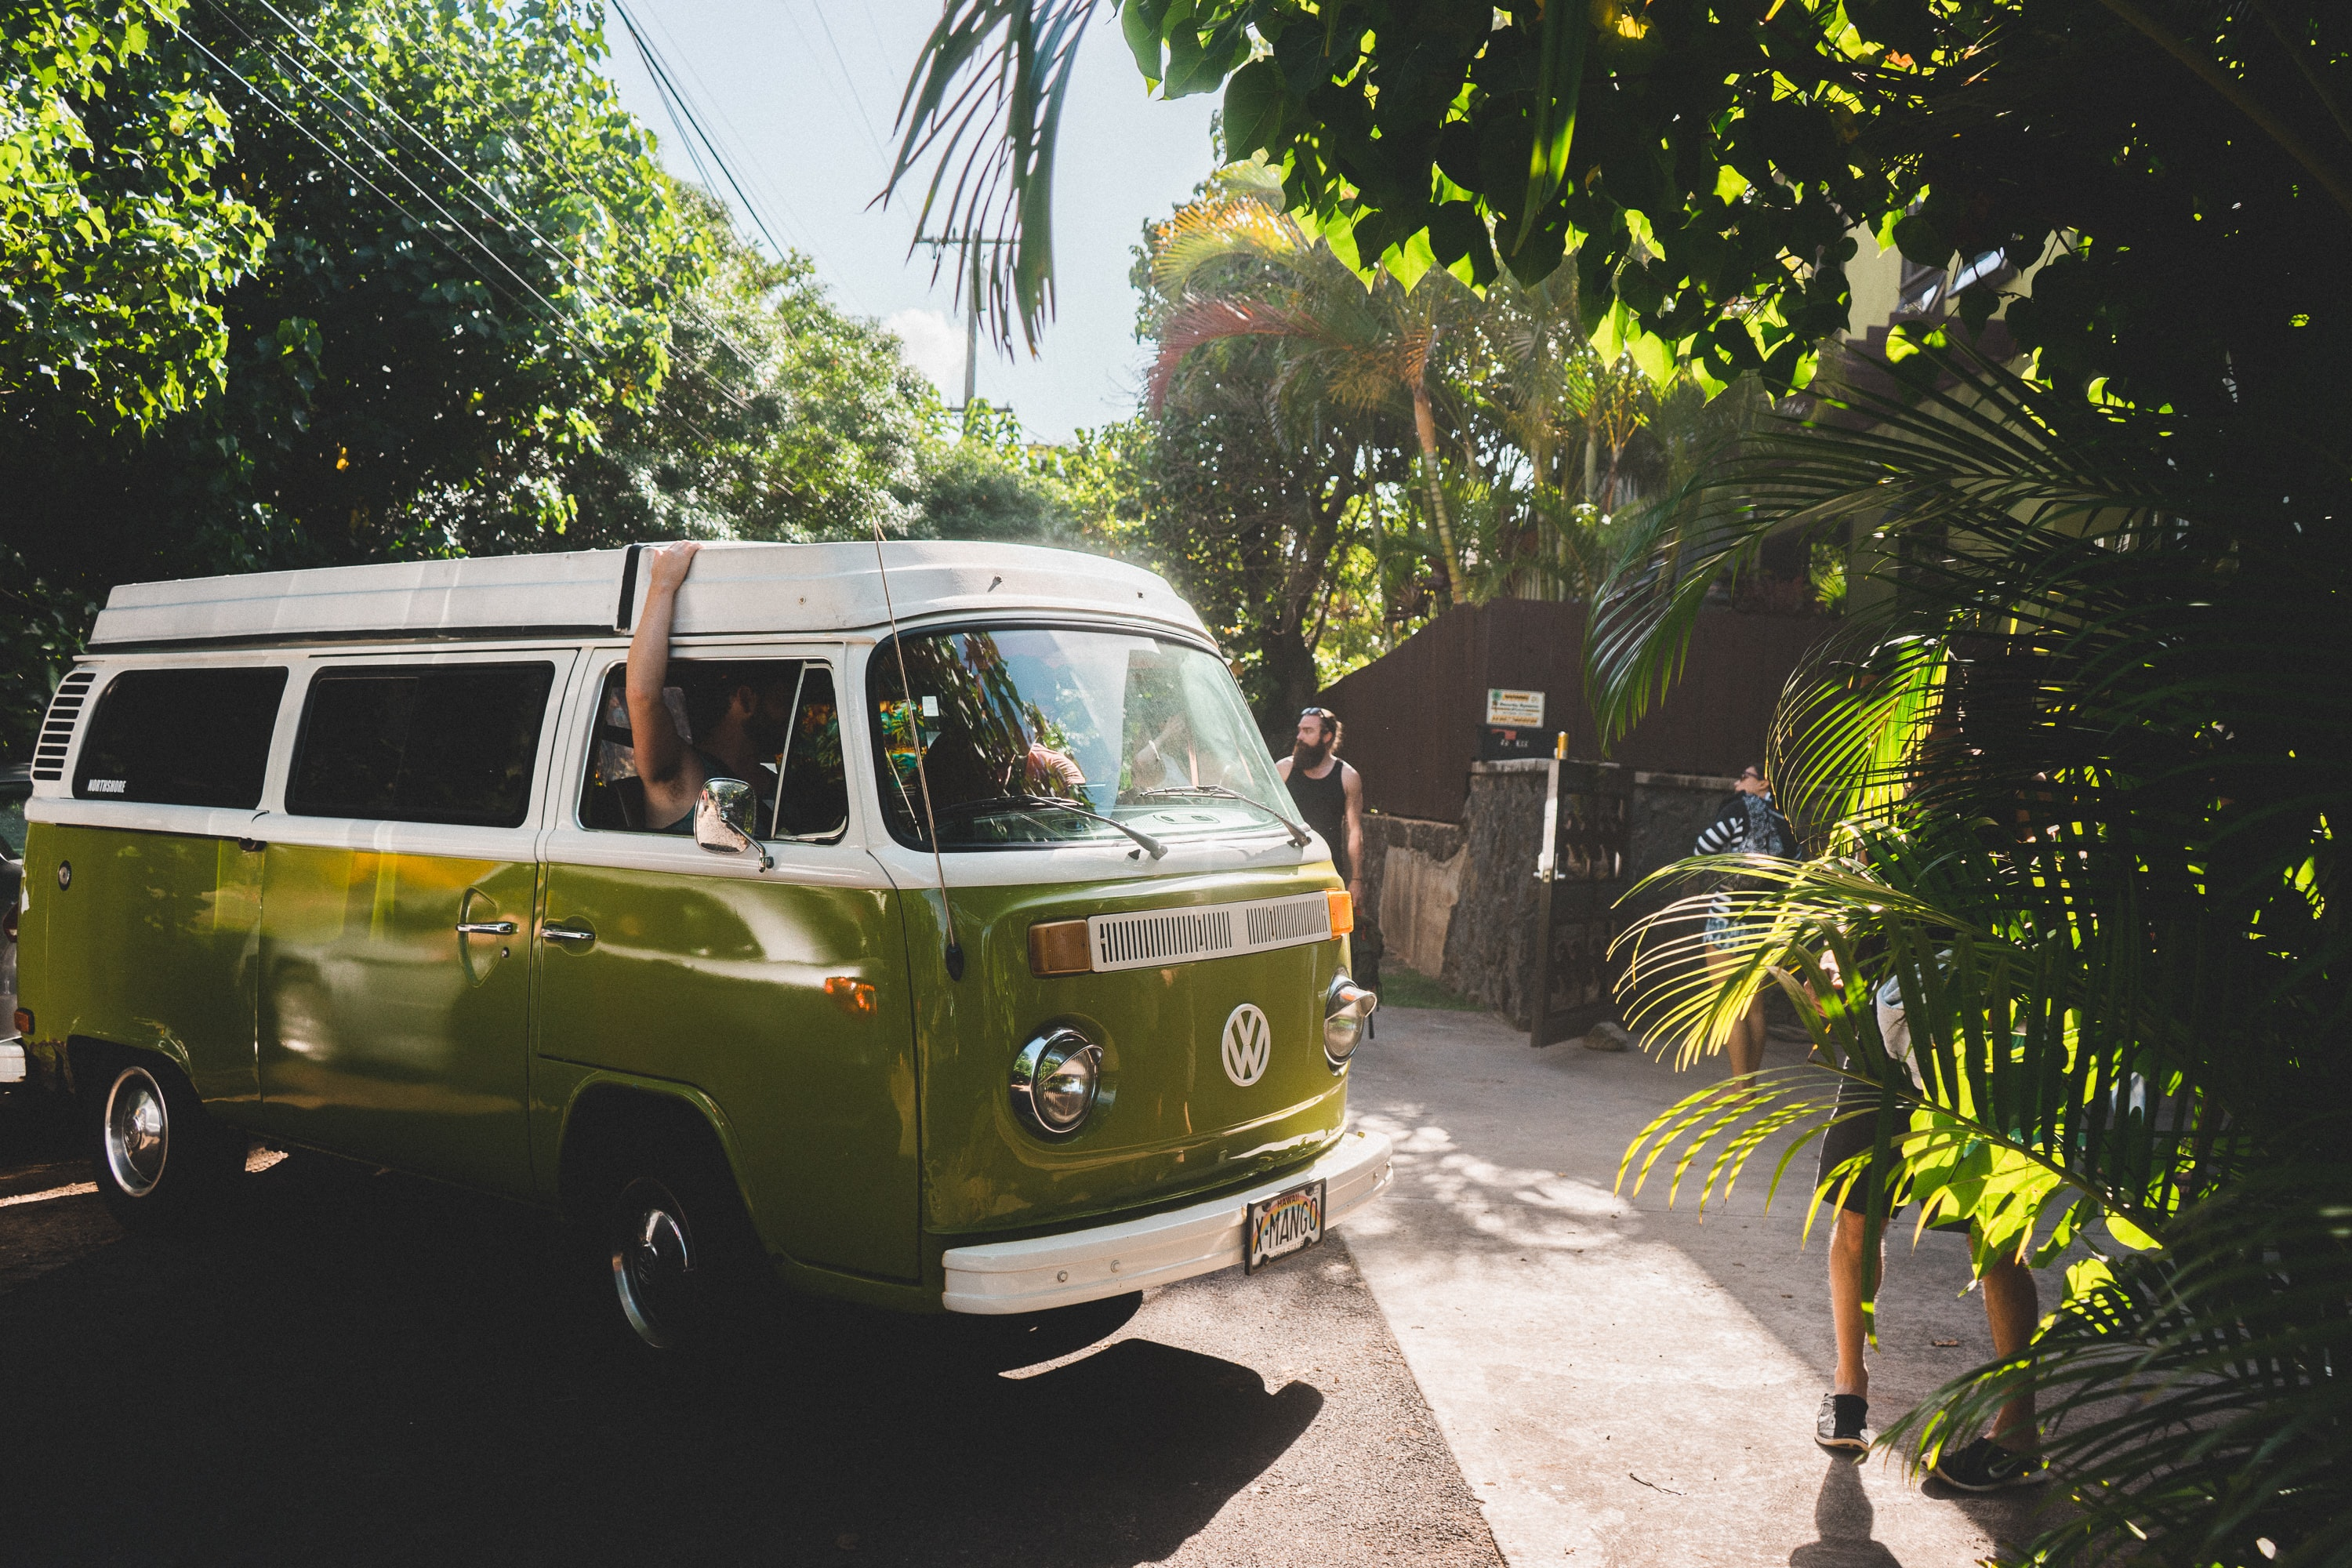 A green Volkswagen bus with people inside parked by bright green trees